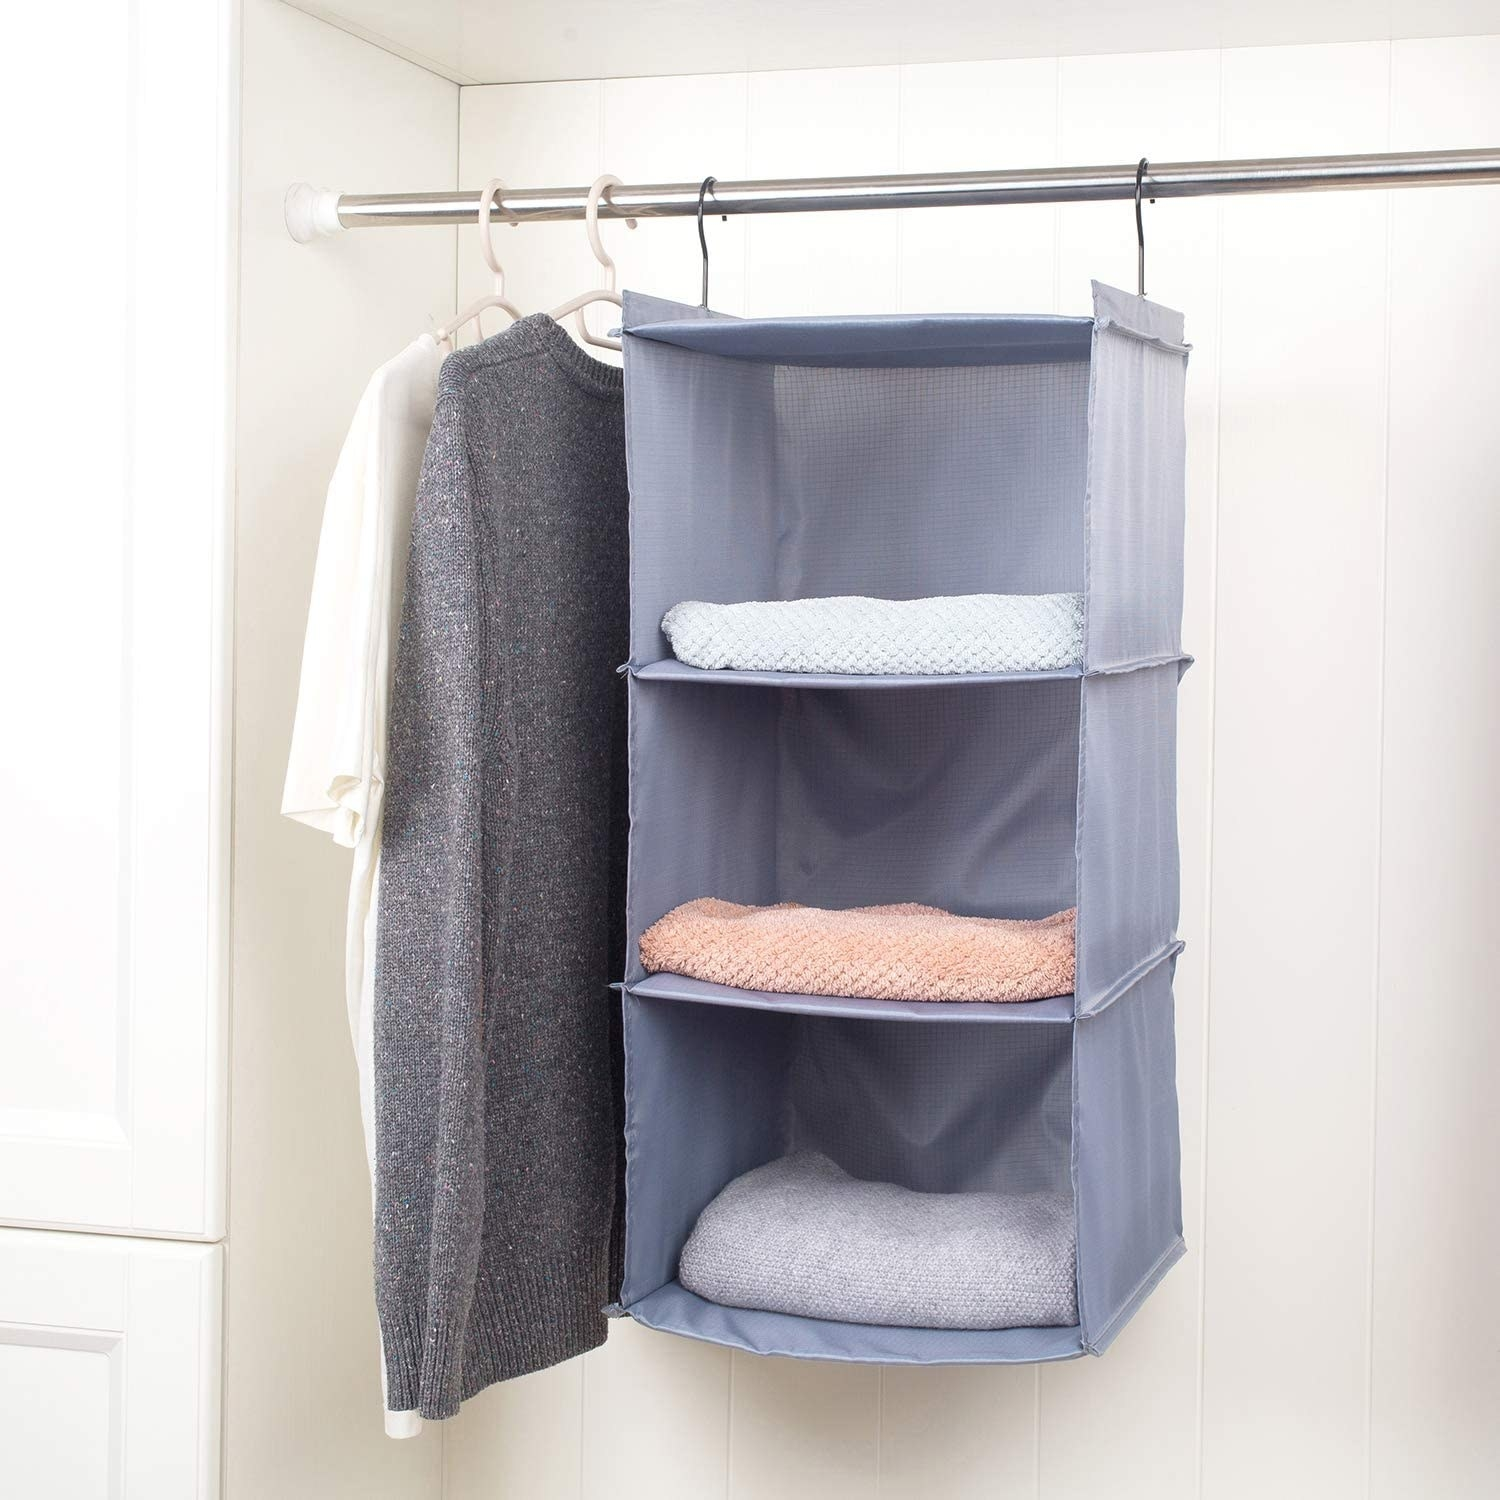 A three shelf hanging organizer in a closet with towels in it